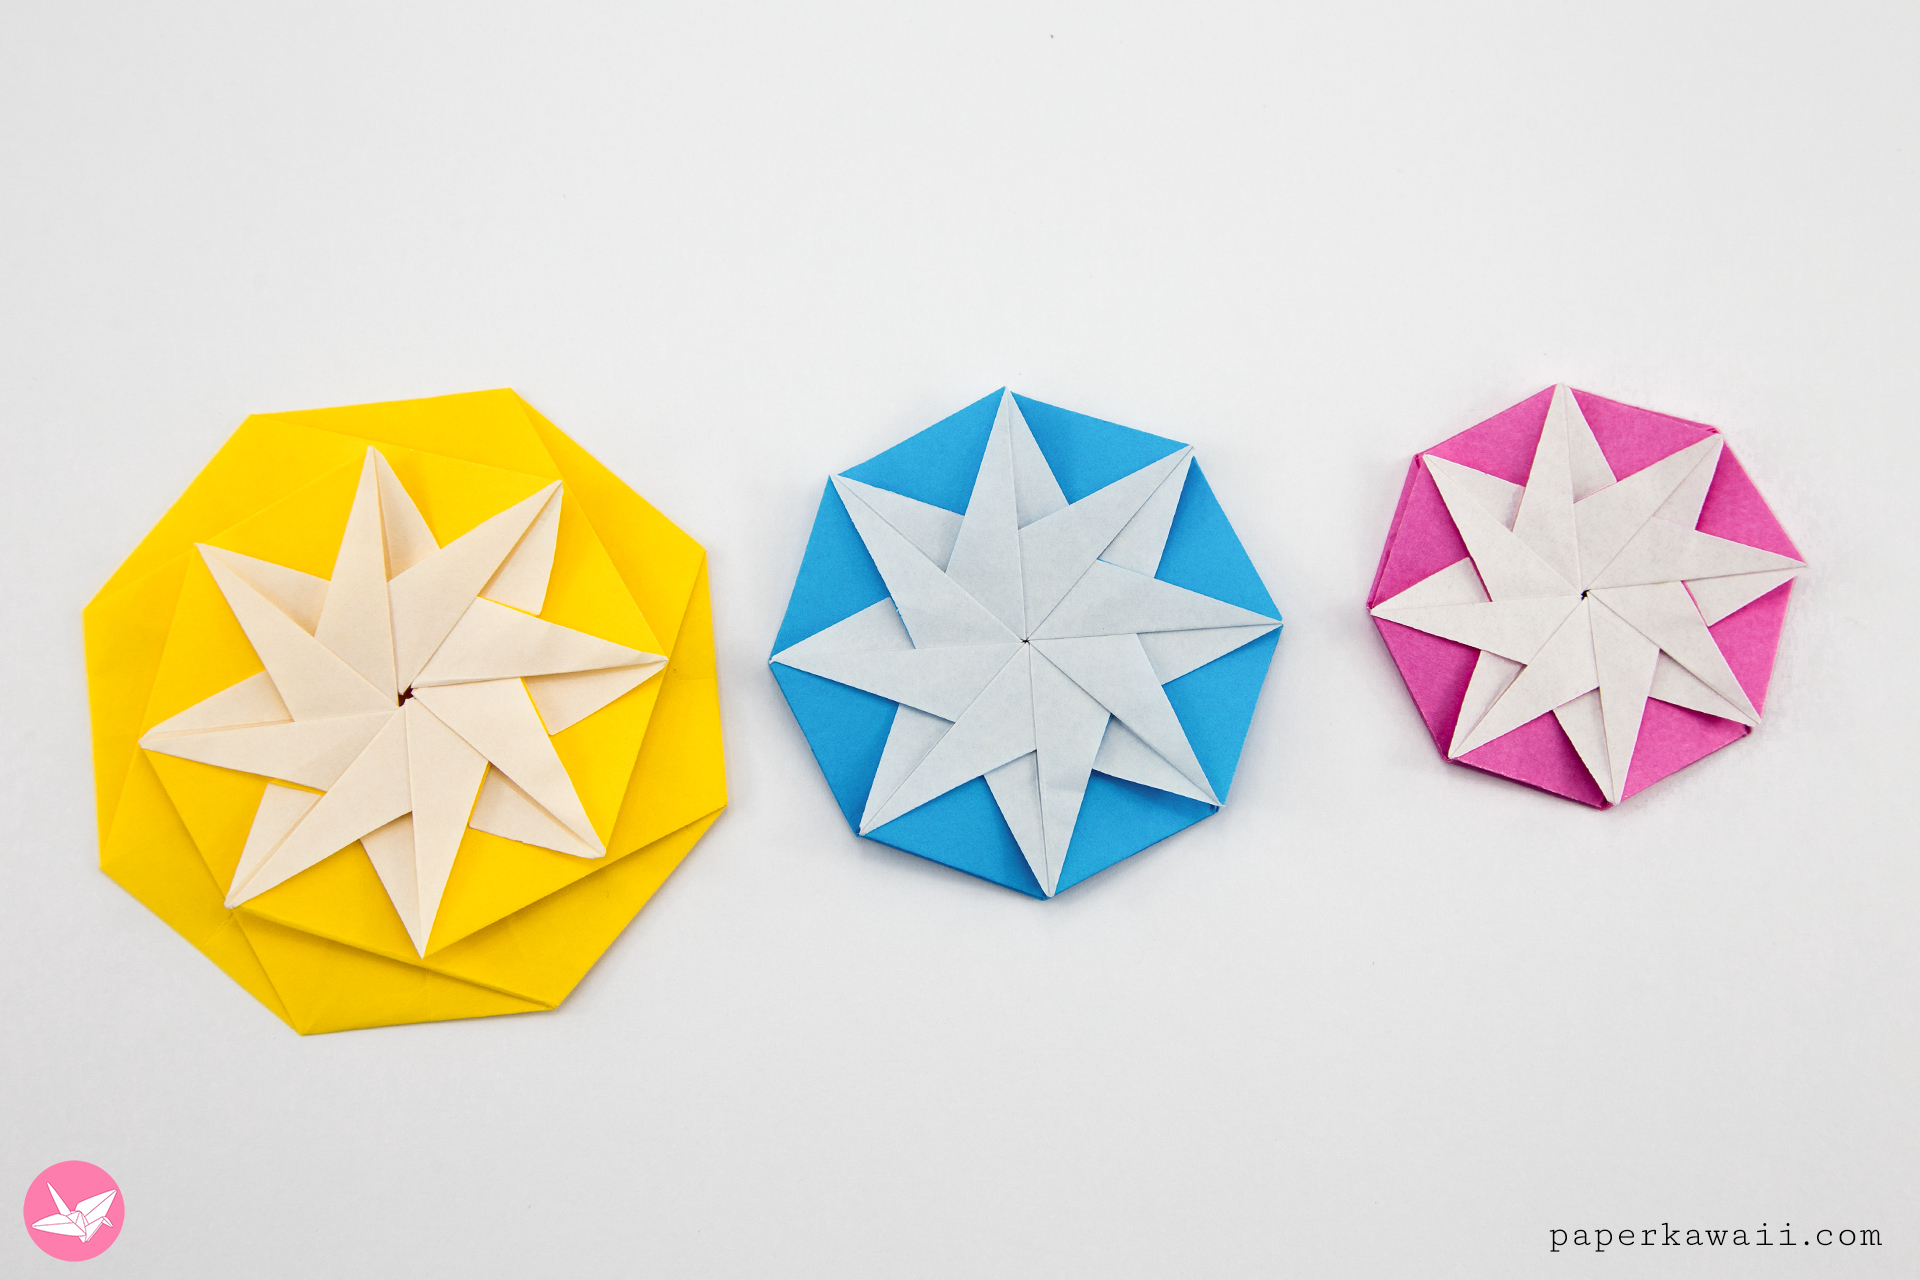 Origami Compass Star Tato Variation Tutorial - Paper Kawaii